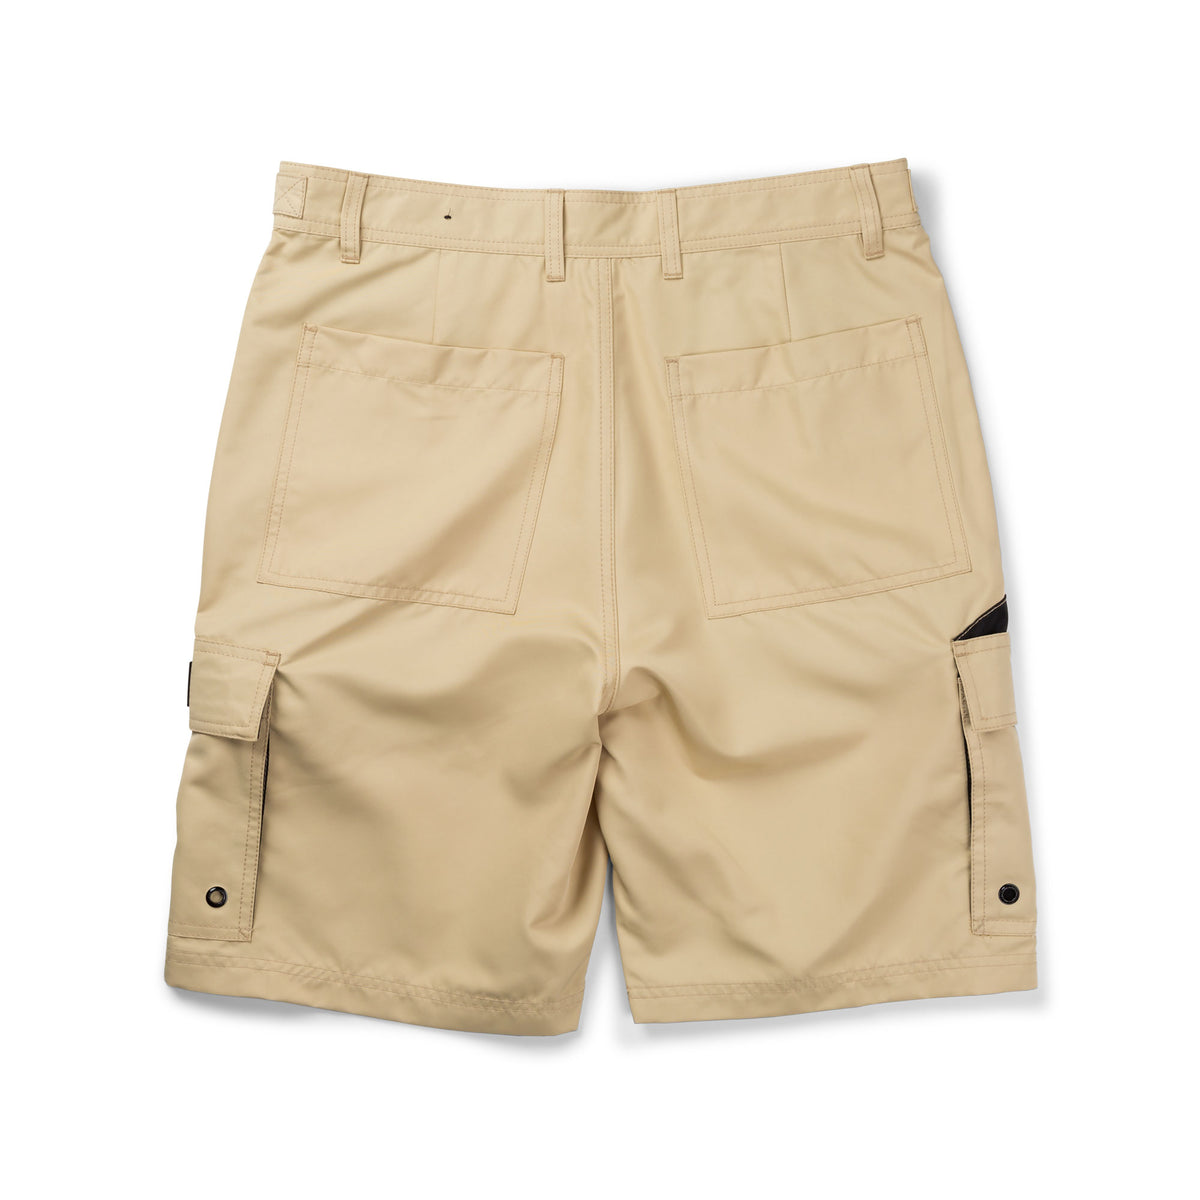 Socorro Fishing Shorts Big Image - 2